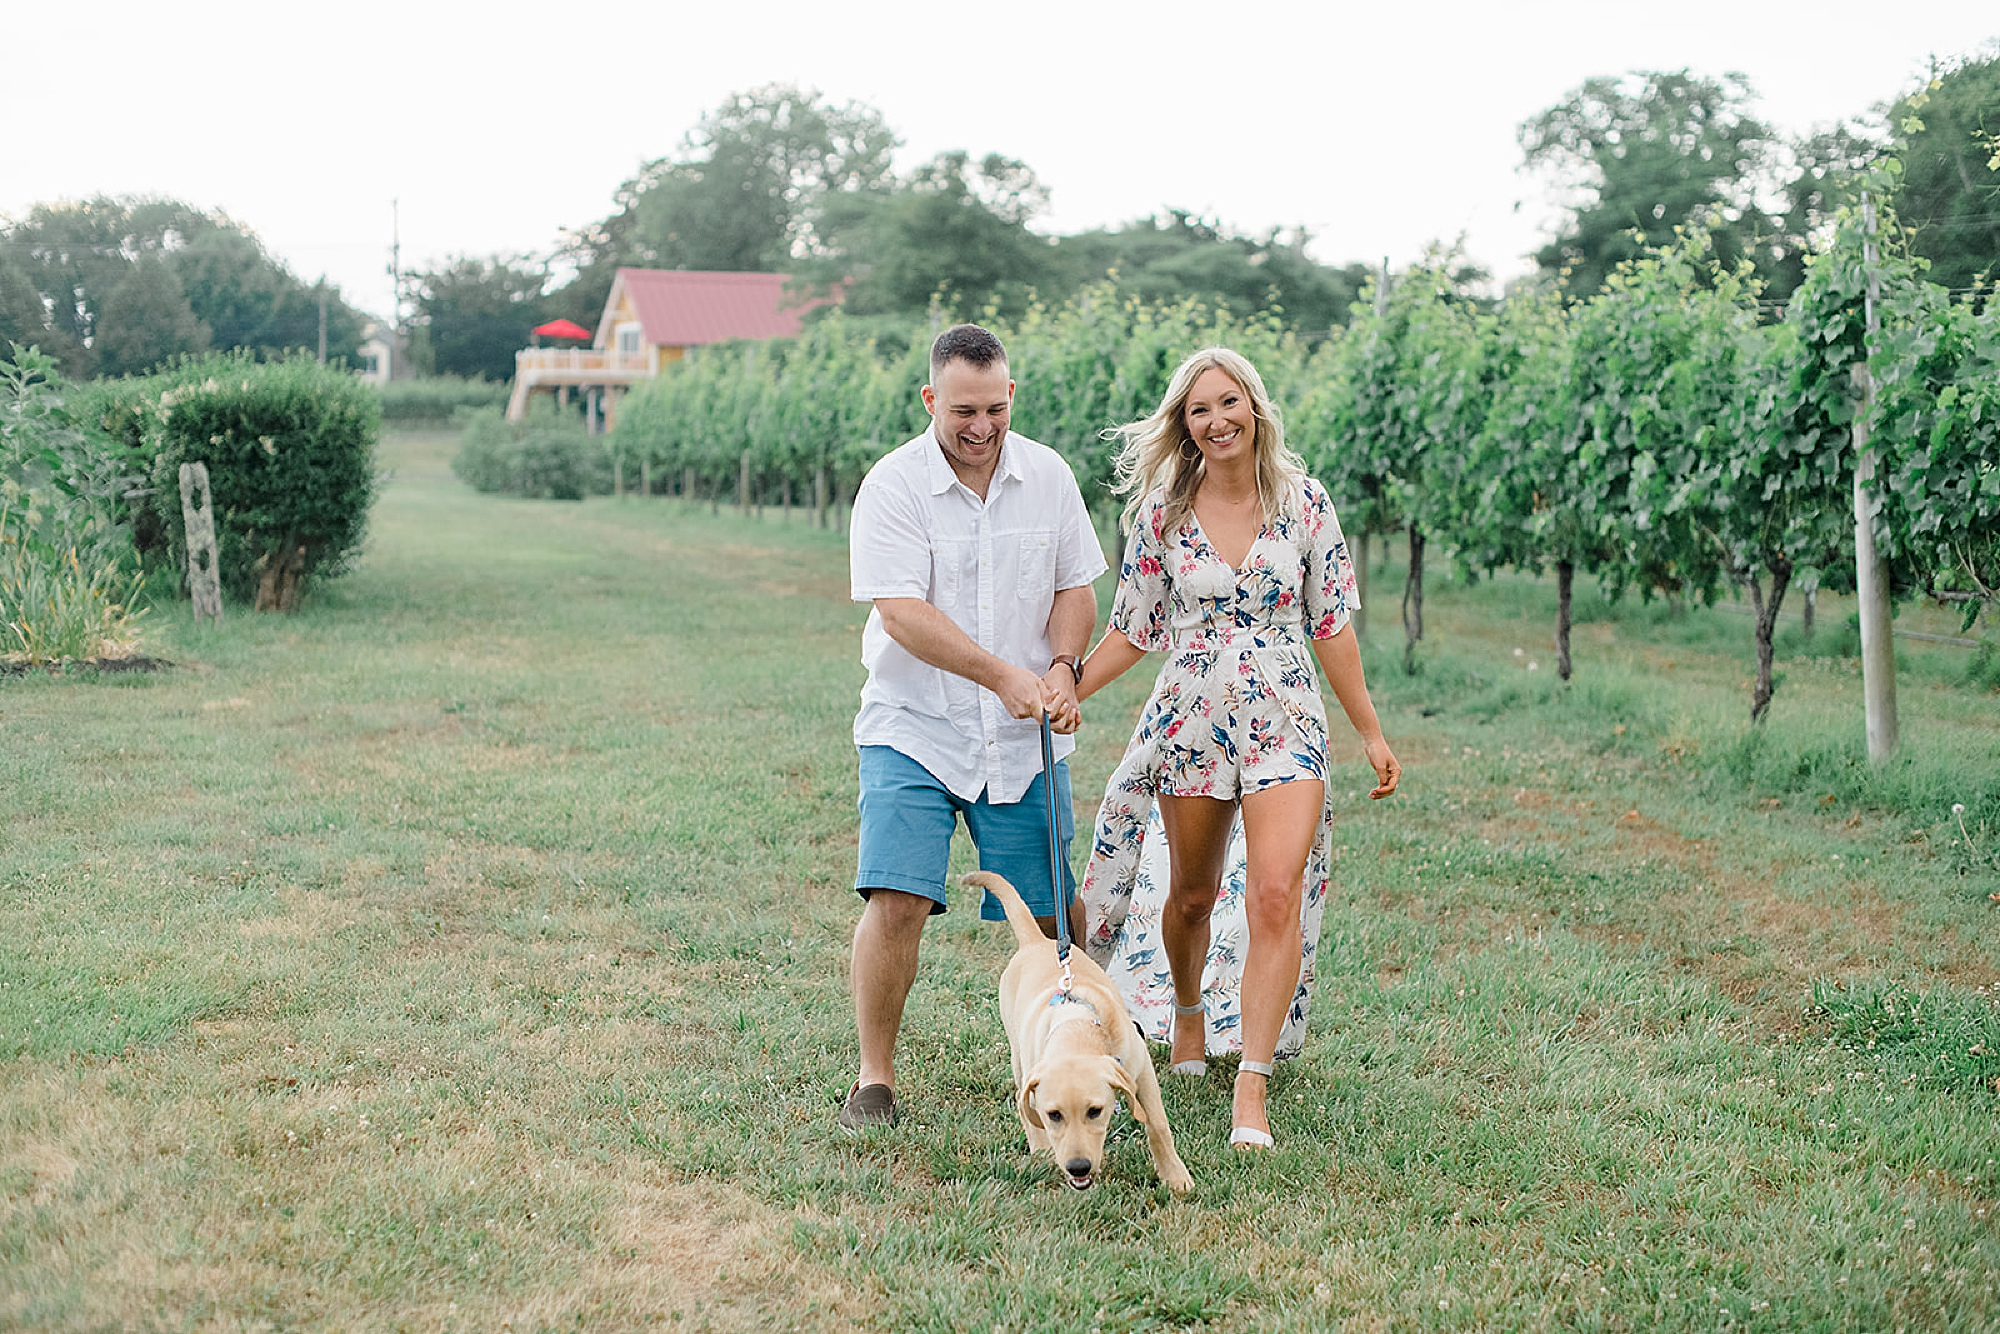 Willow Creek Winery New Jersey Engagement Photography with Dog by Magdalena Studios 0003